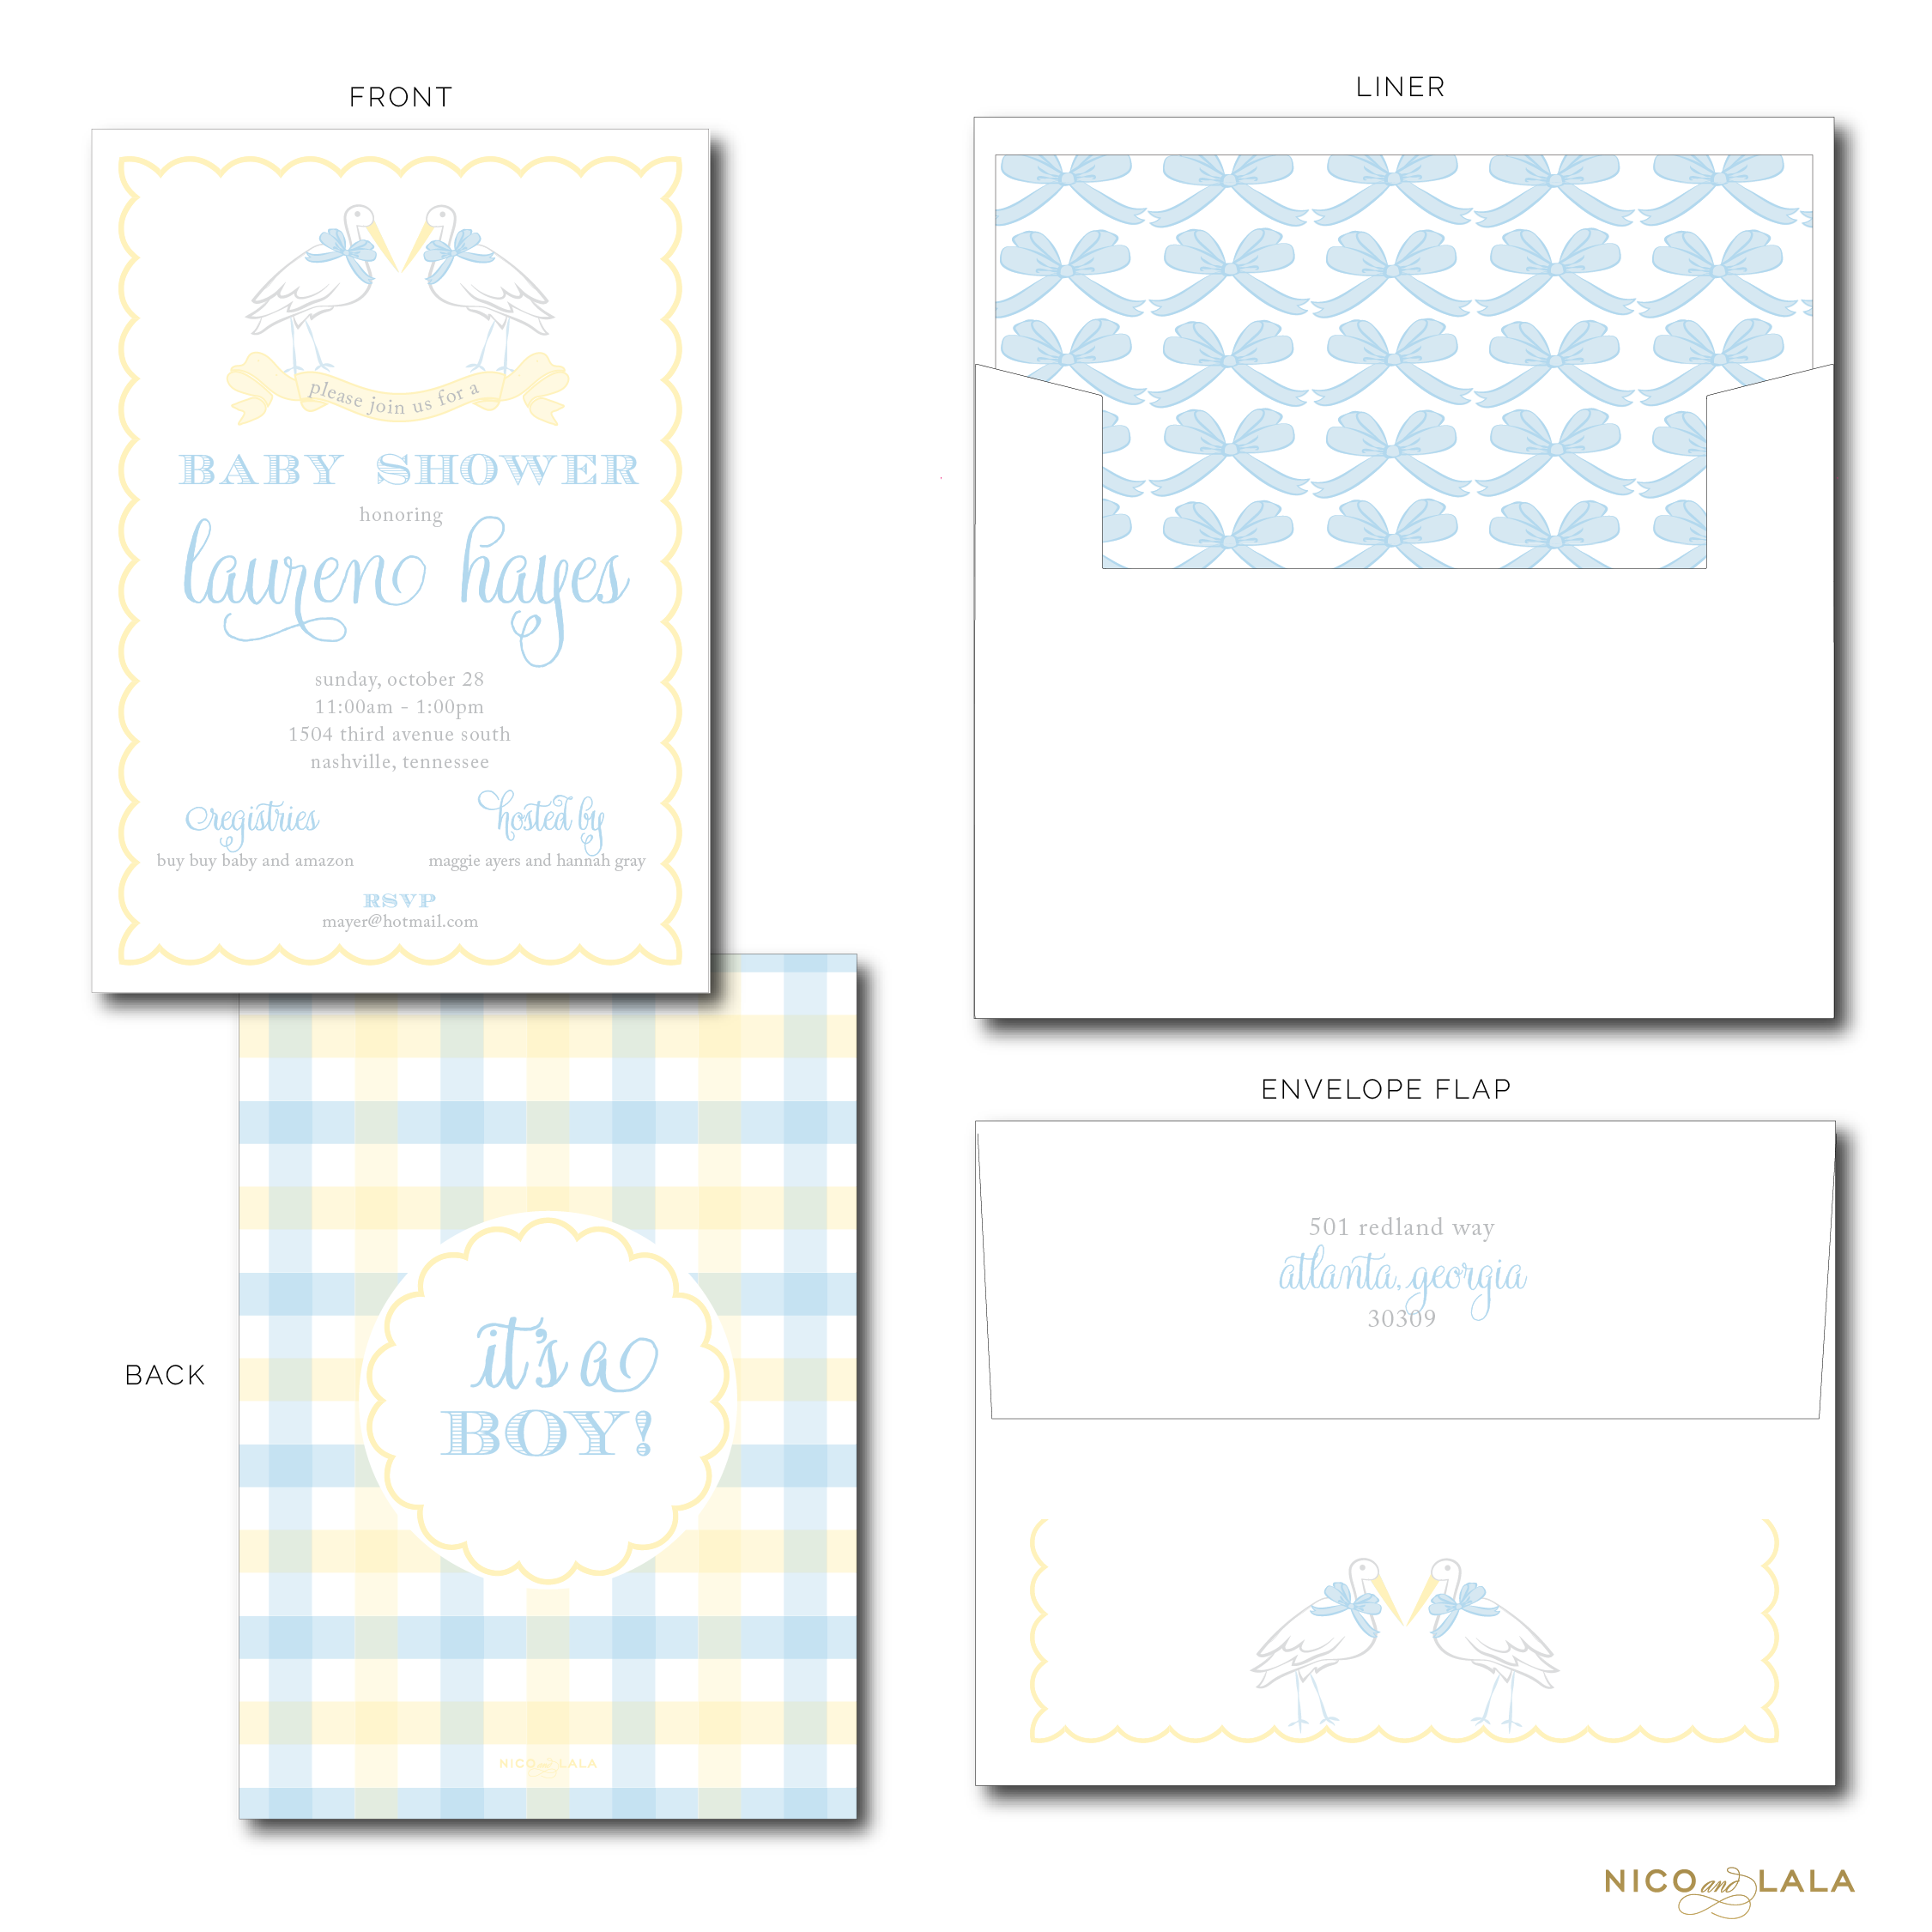 STORK BABY SHOWER INVITATIONS